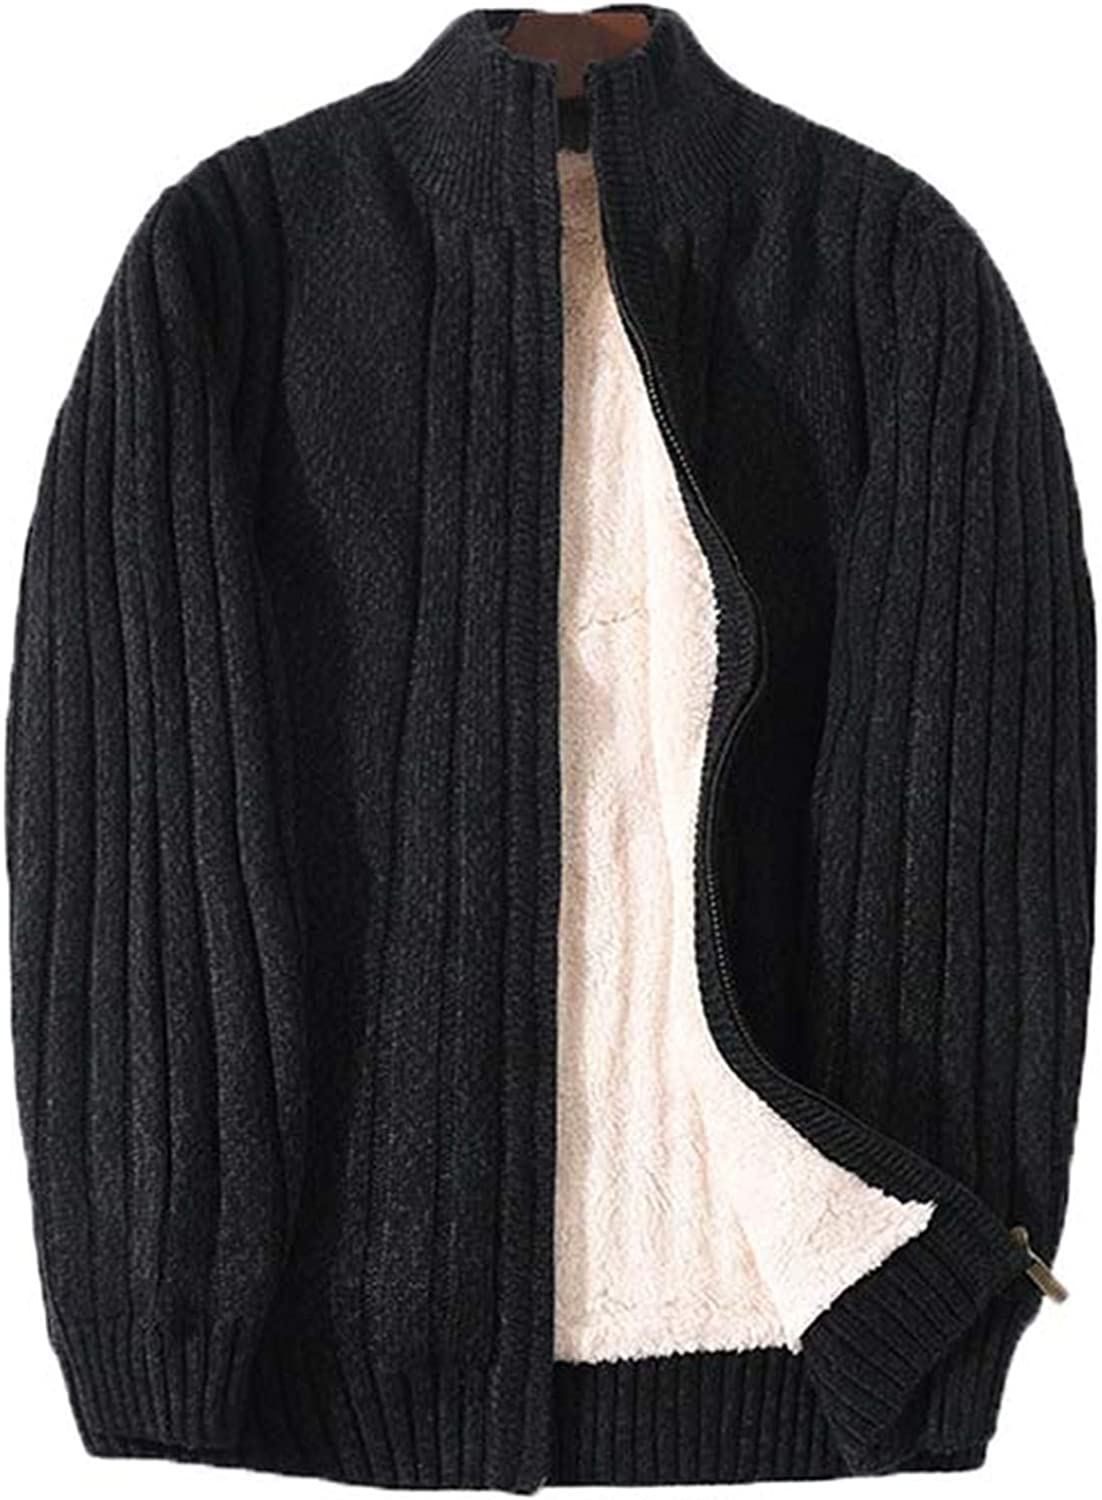 Lamb Cashmere Winter Men Sweaters Knitted Black Cotton Thicken Warm Cardigan